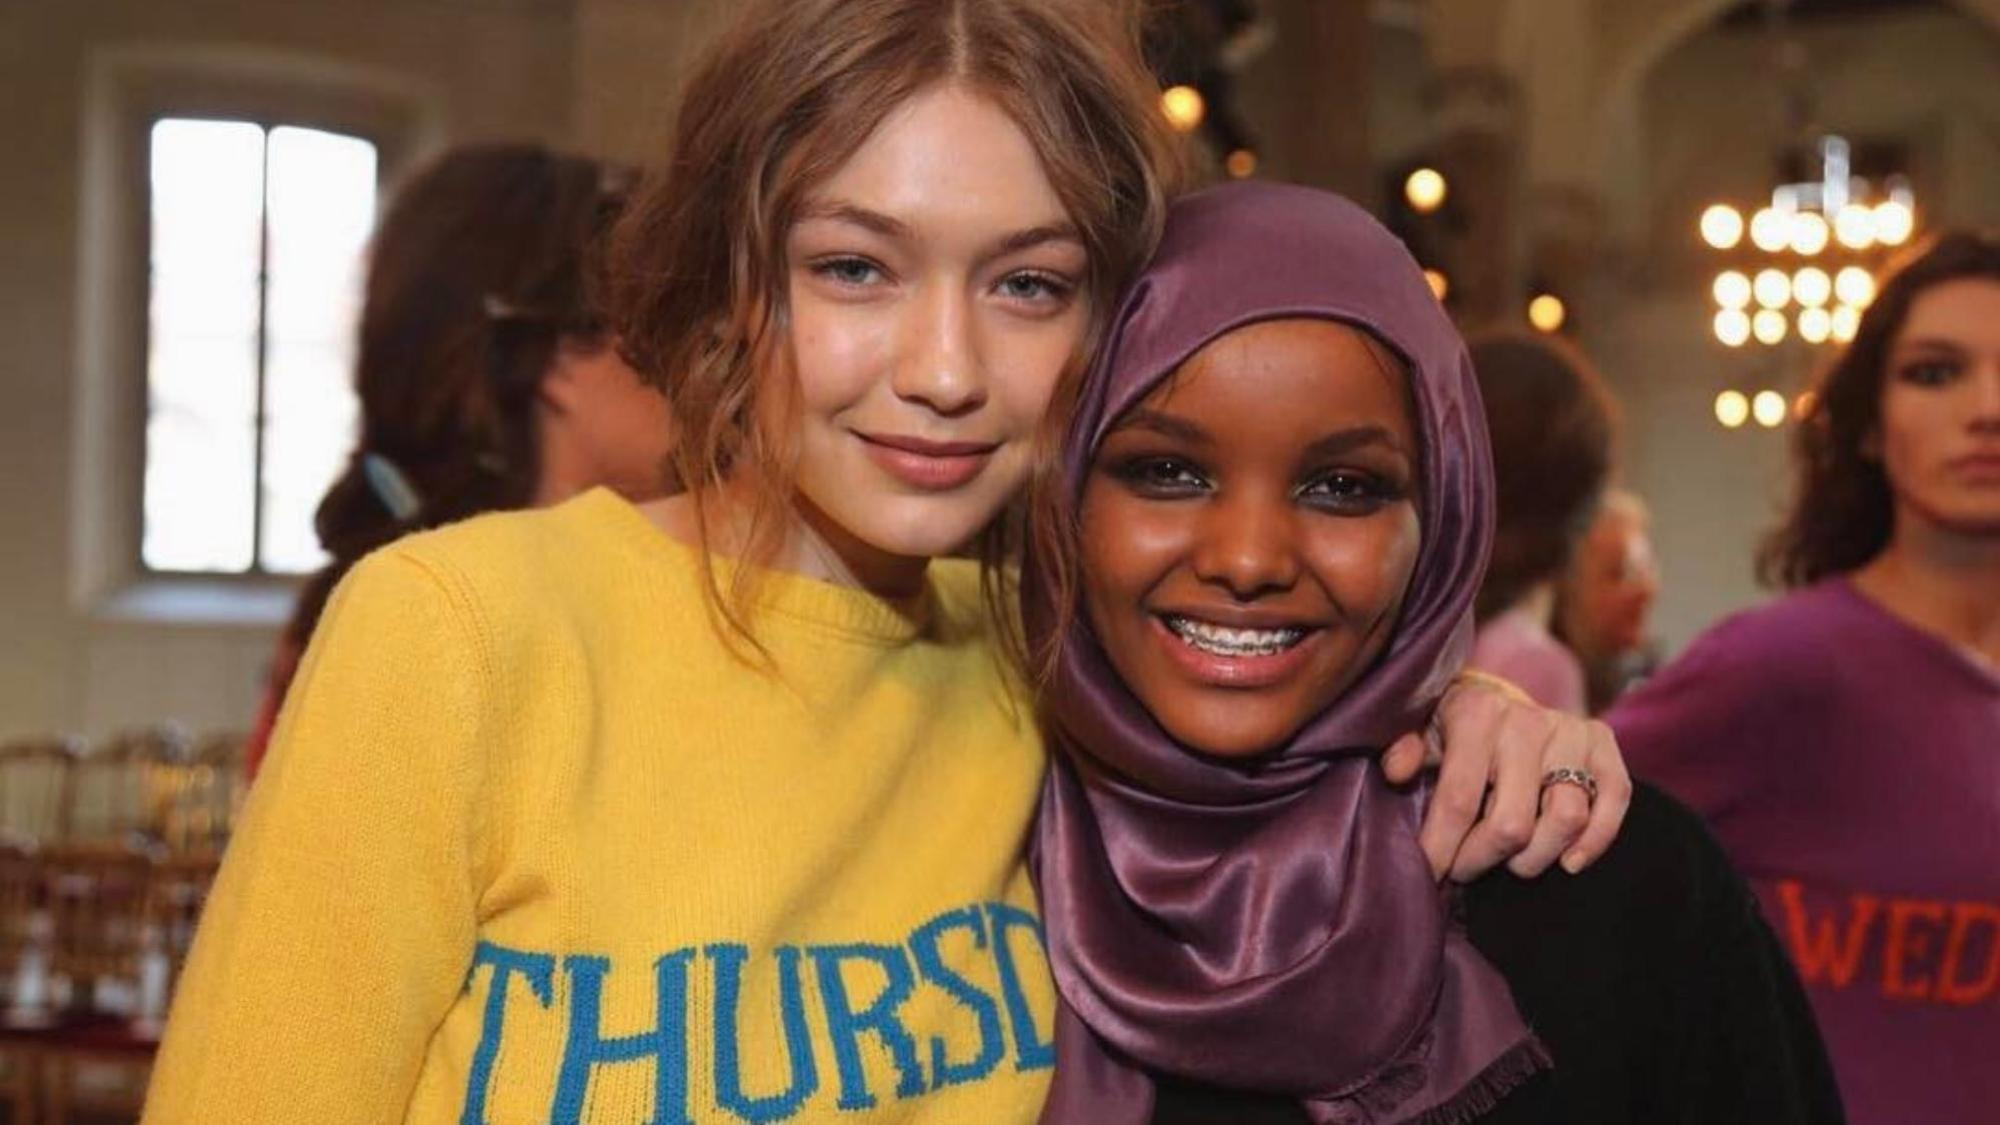 how do we ensure fashion's diversity drive doesn't just fetishise the new wave of models?